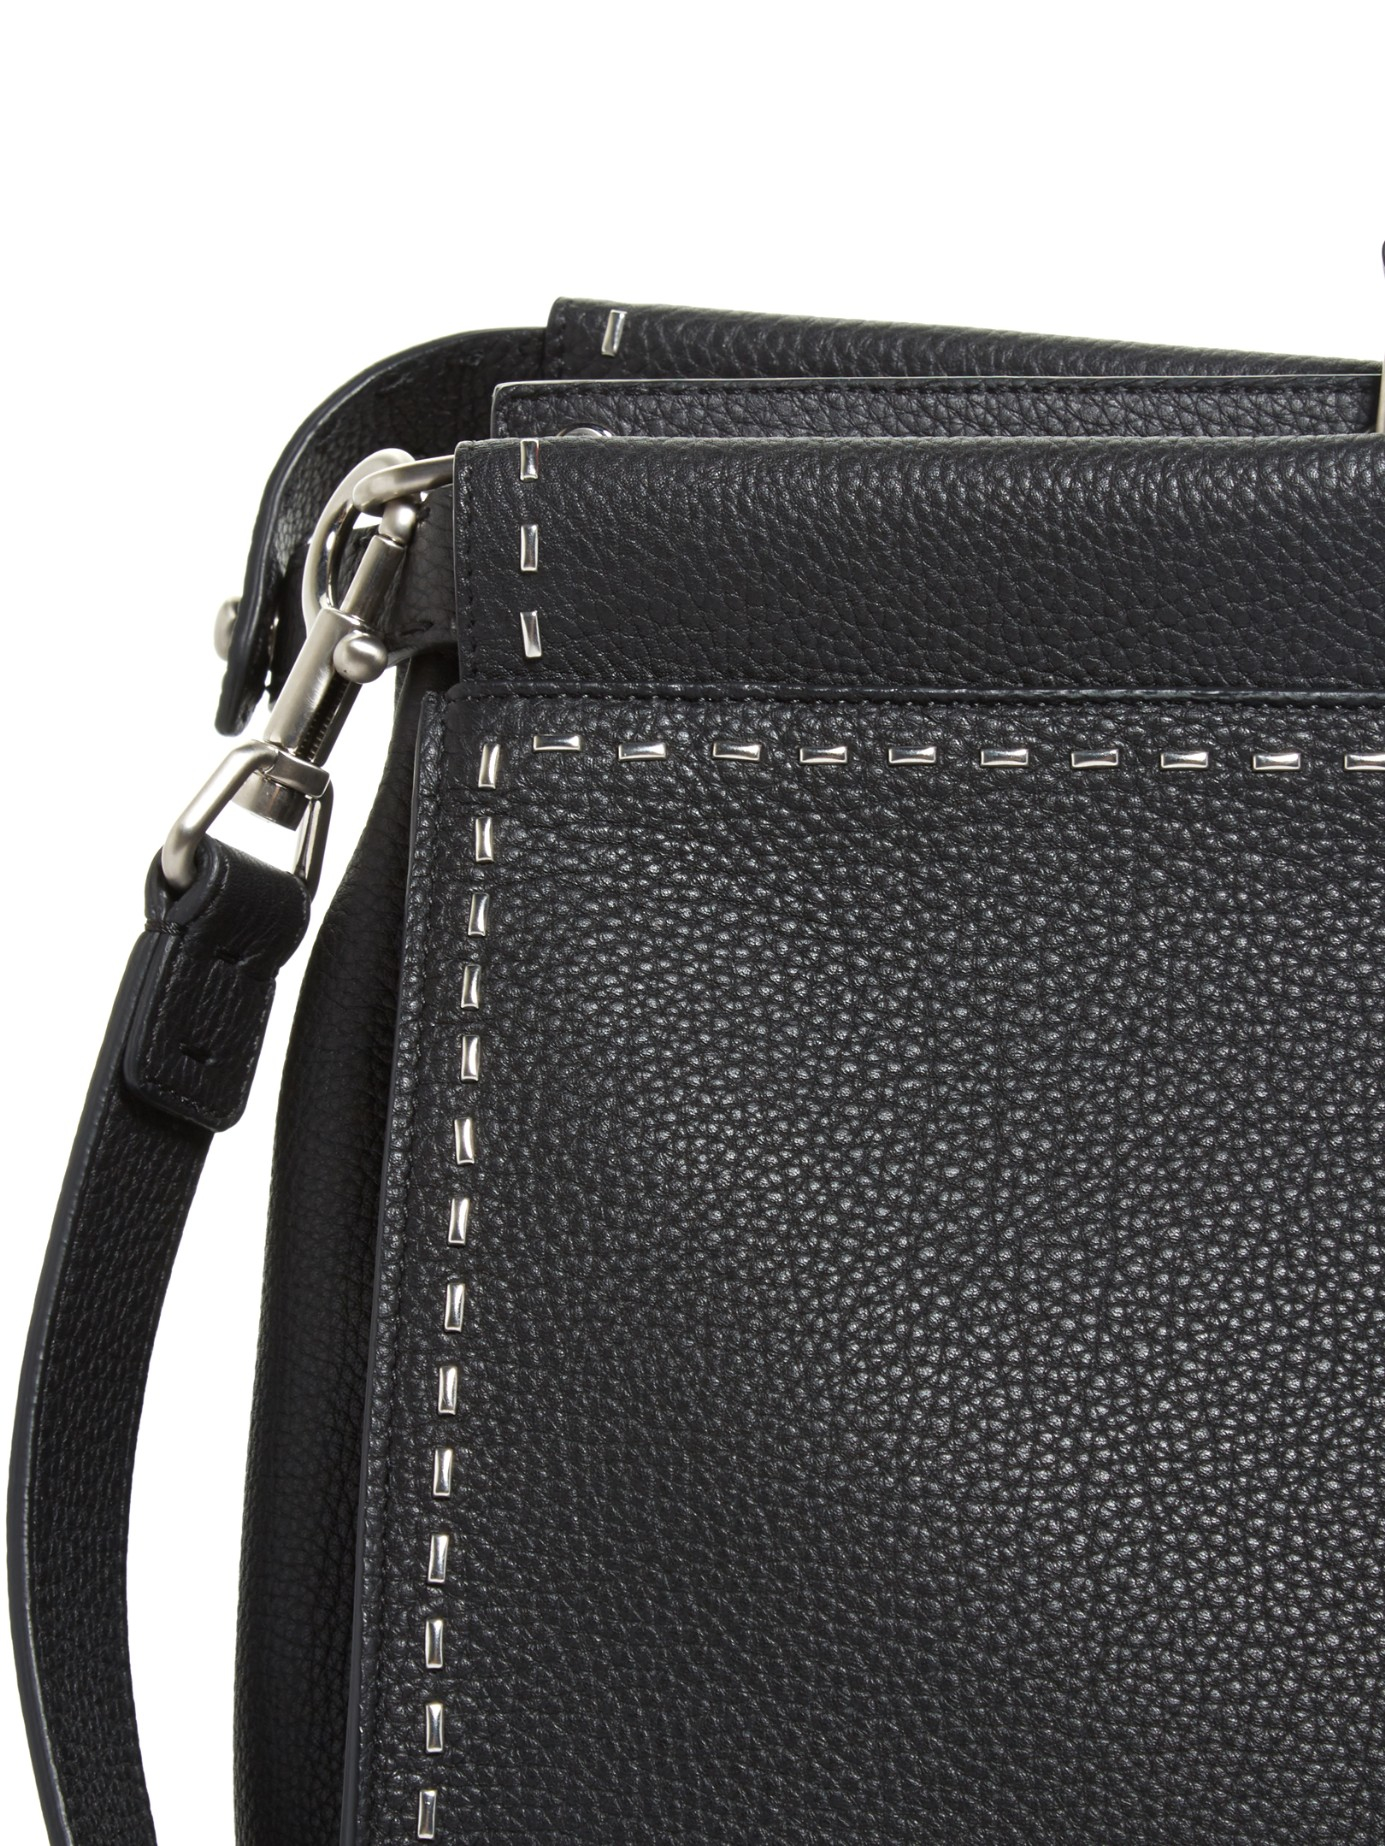 ... promo code for lyst fendi stitched peekaboo leather weekend bag in black  for men f981d aaa4a ... d4d07c9951